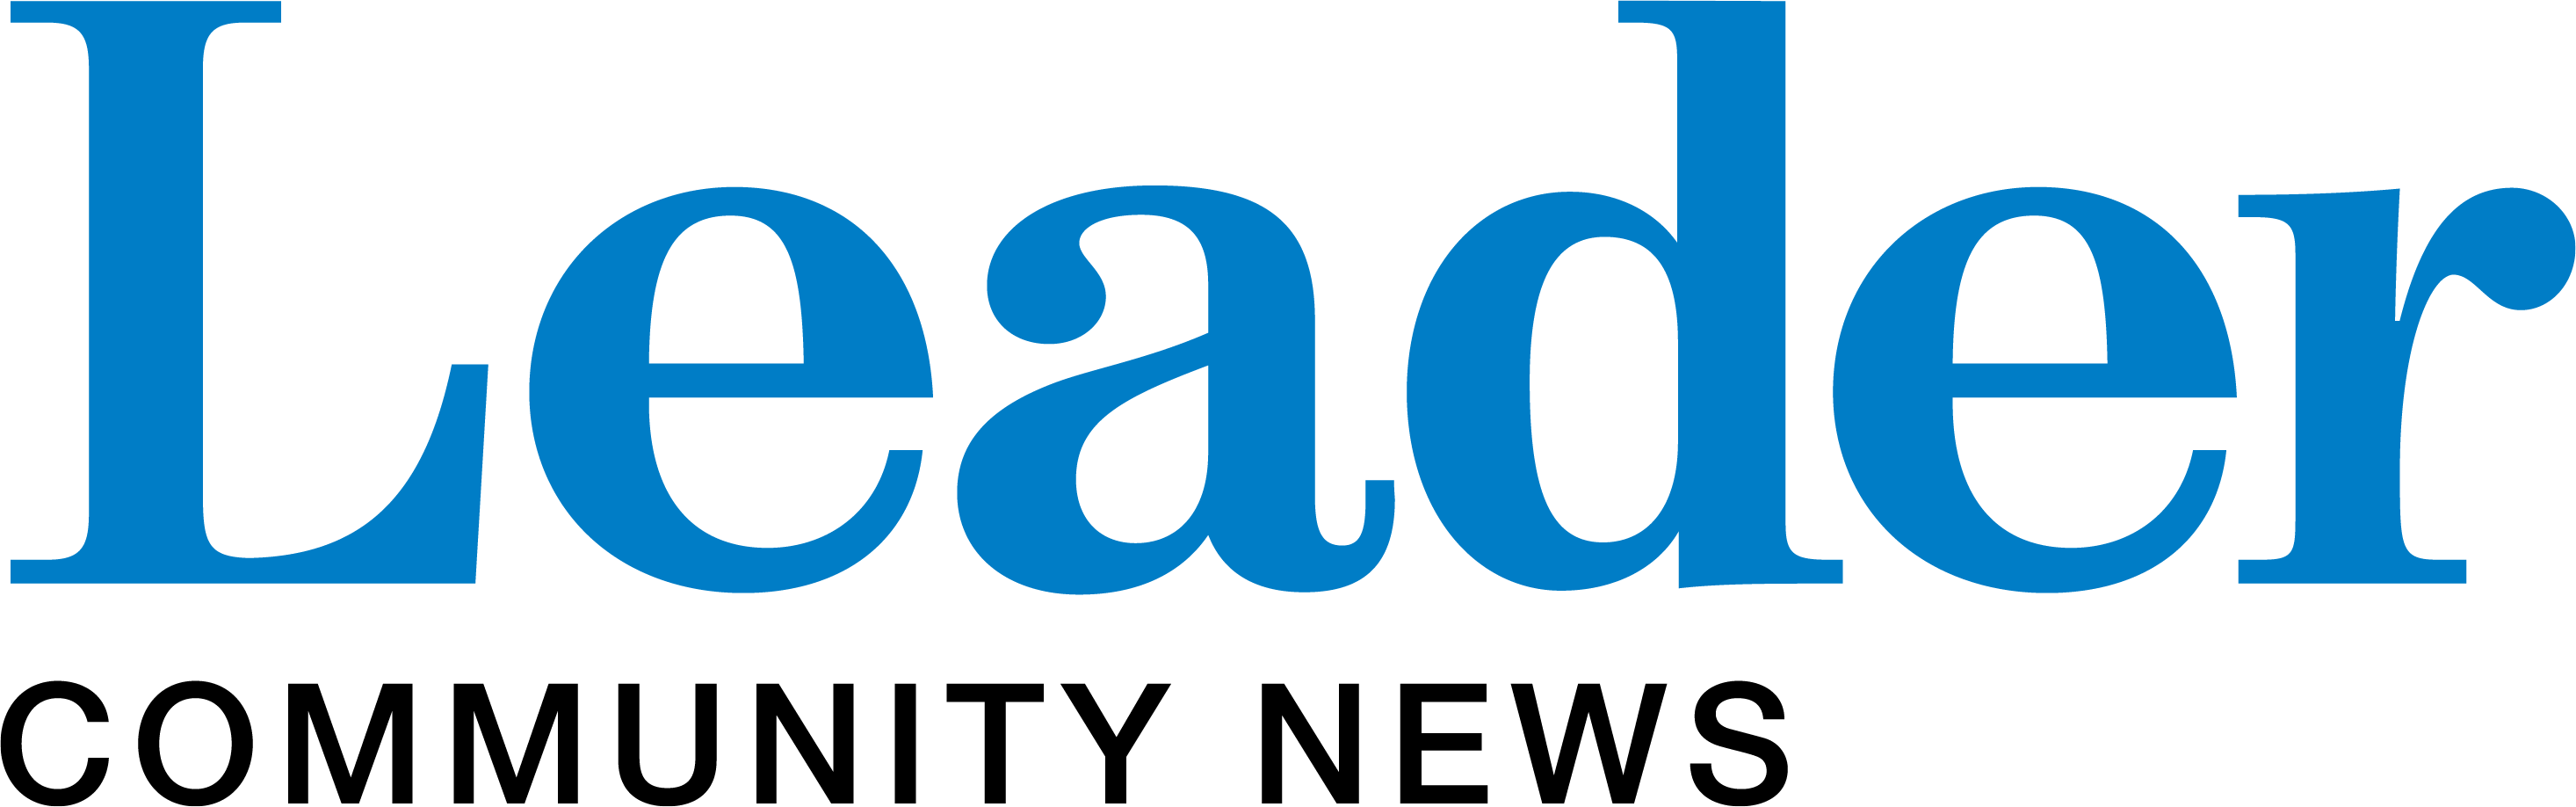 Leader Community News Logo